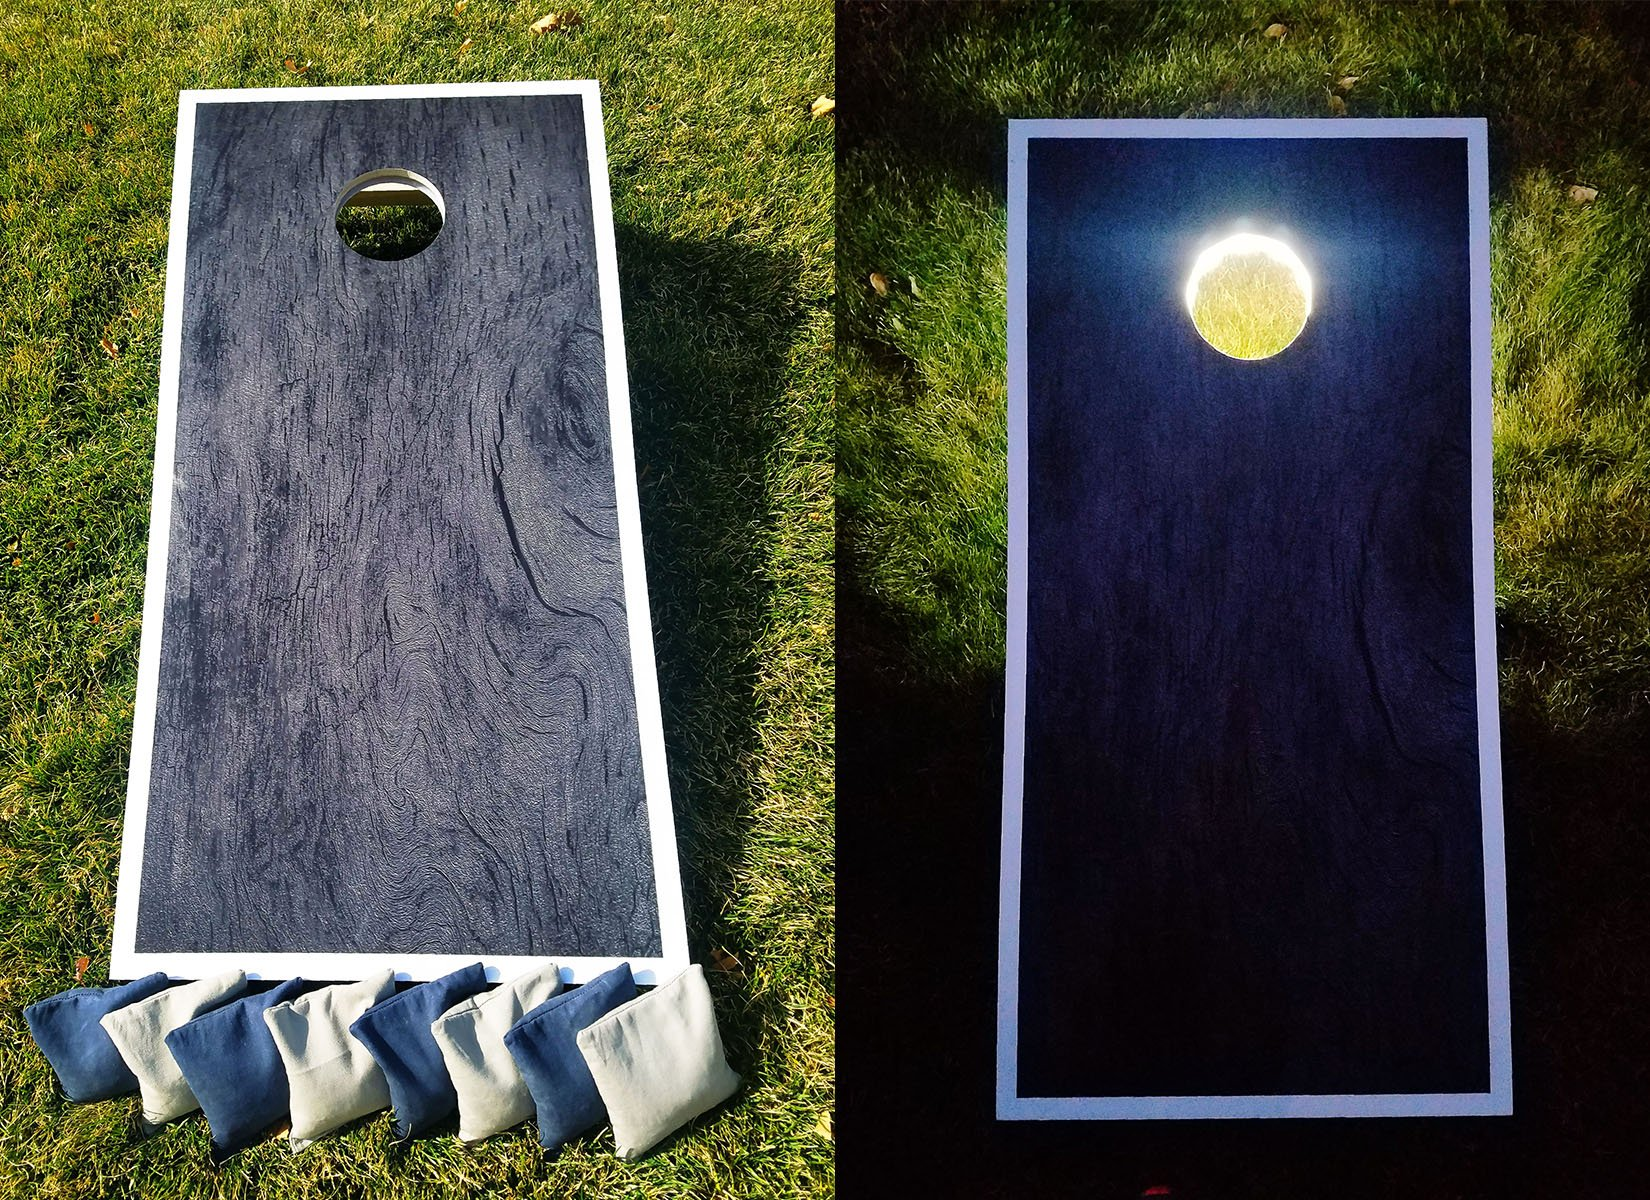 SLR Day & Night Cornhole Board Set - Dark Wood ACA Regulation Size Premium Hardwood Frame W/ Lights Included. Also Comes With 8 Official Size And Weight Corn hole Bags. by SLR Cornhole Co